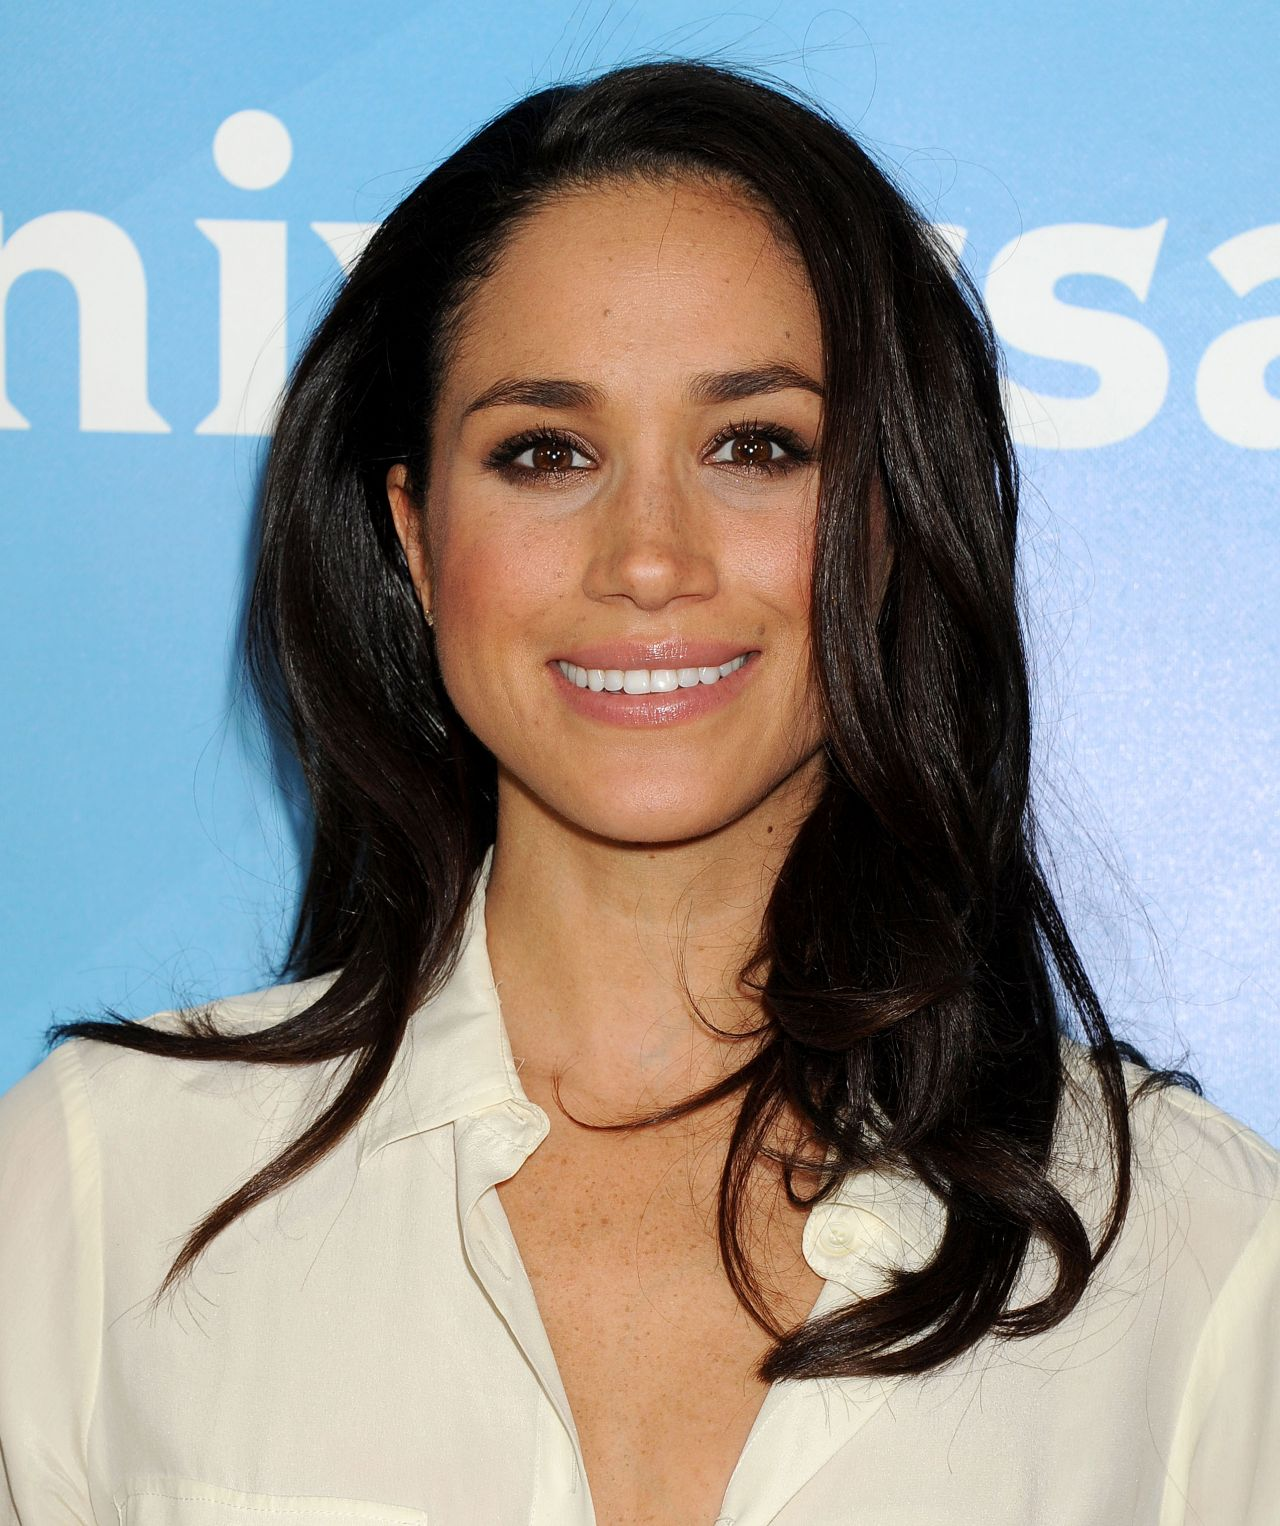 Meghan Markle - NBC/Universal 2014 TCA Winter Press Tour in Pasadena